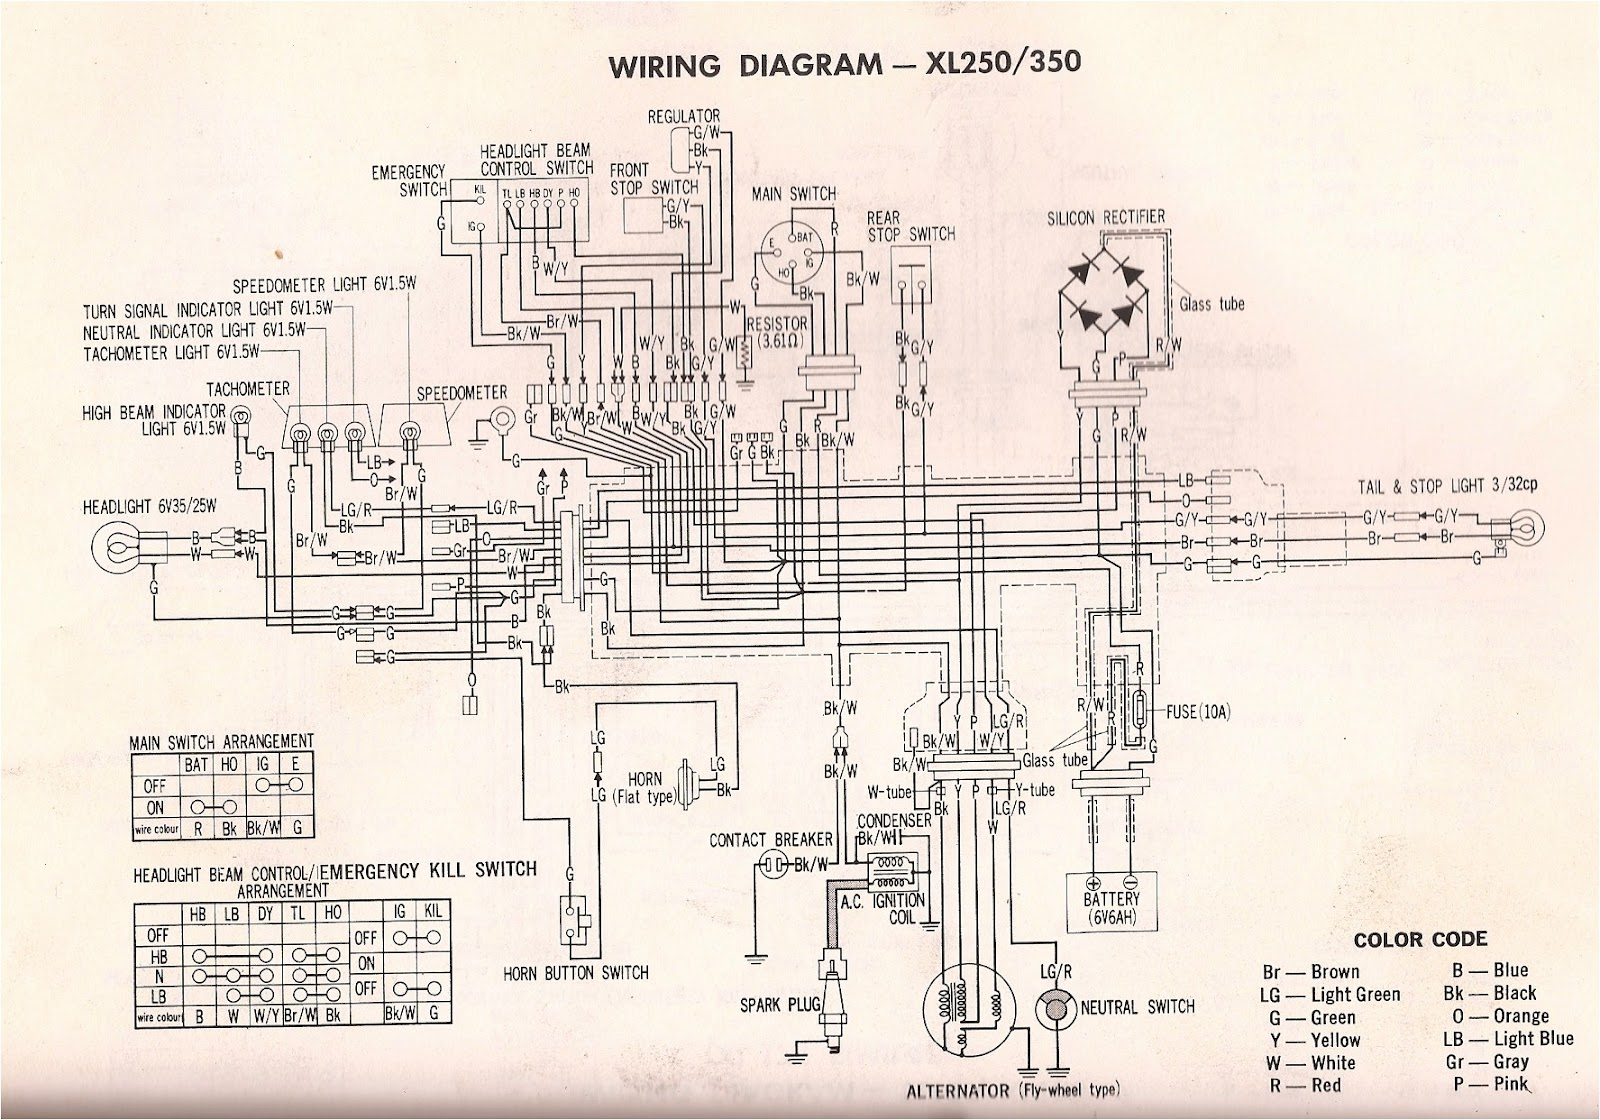 1998 Big Bear 350 Wiring Diagram R4l Xl350 Wiring Diagram And Xl250